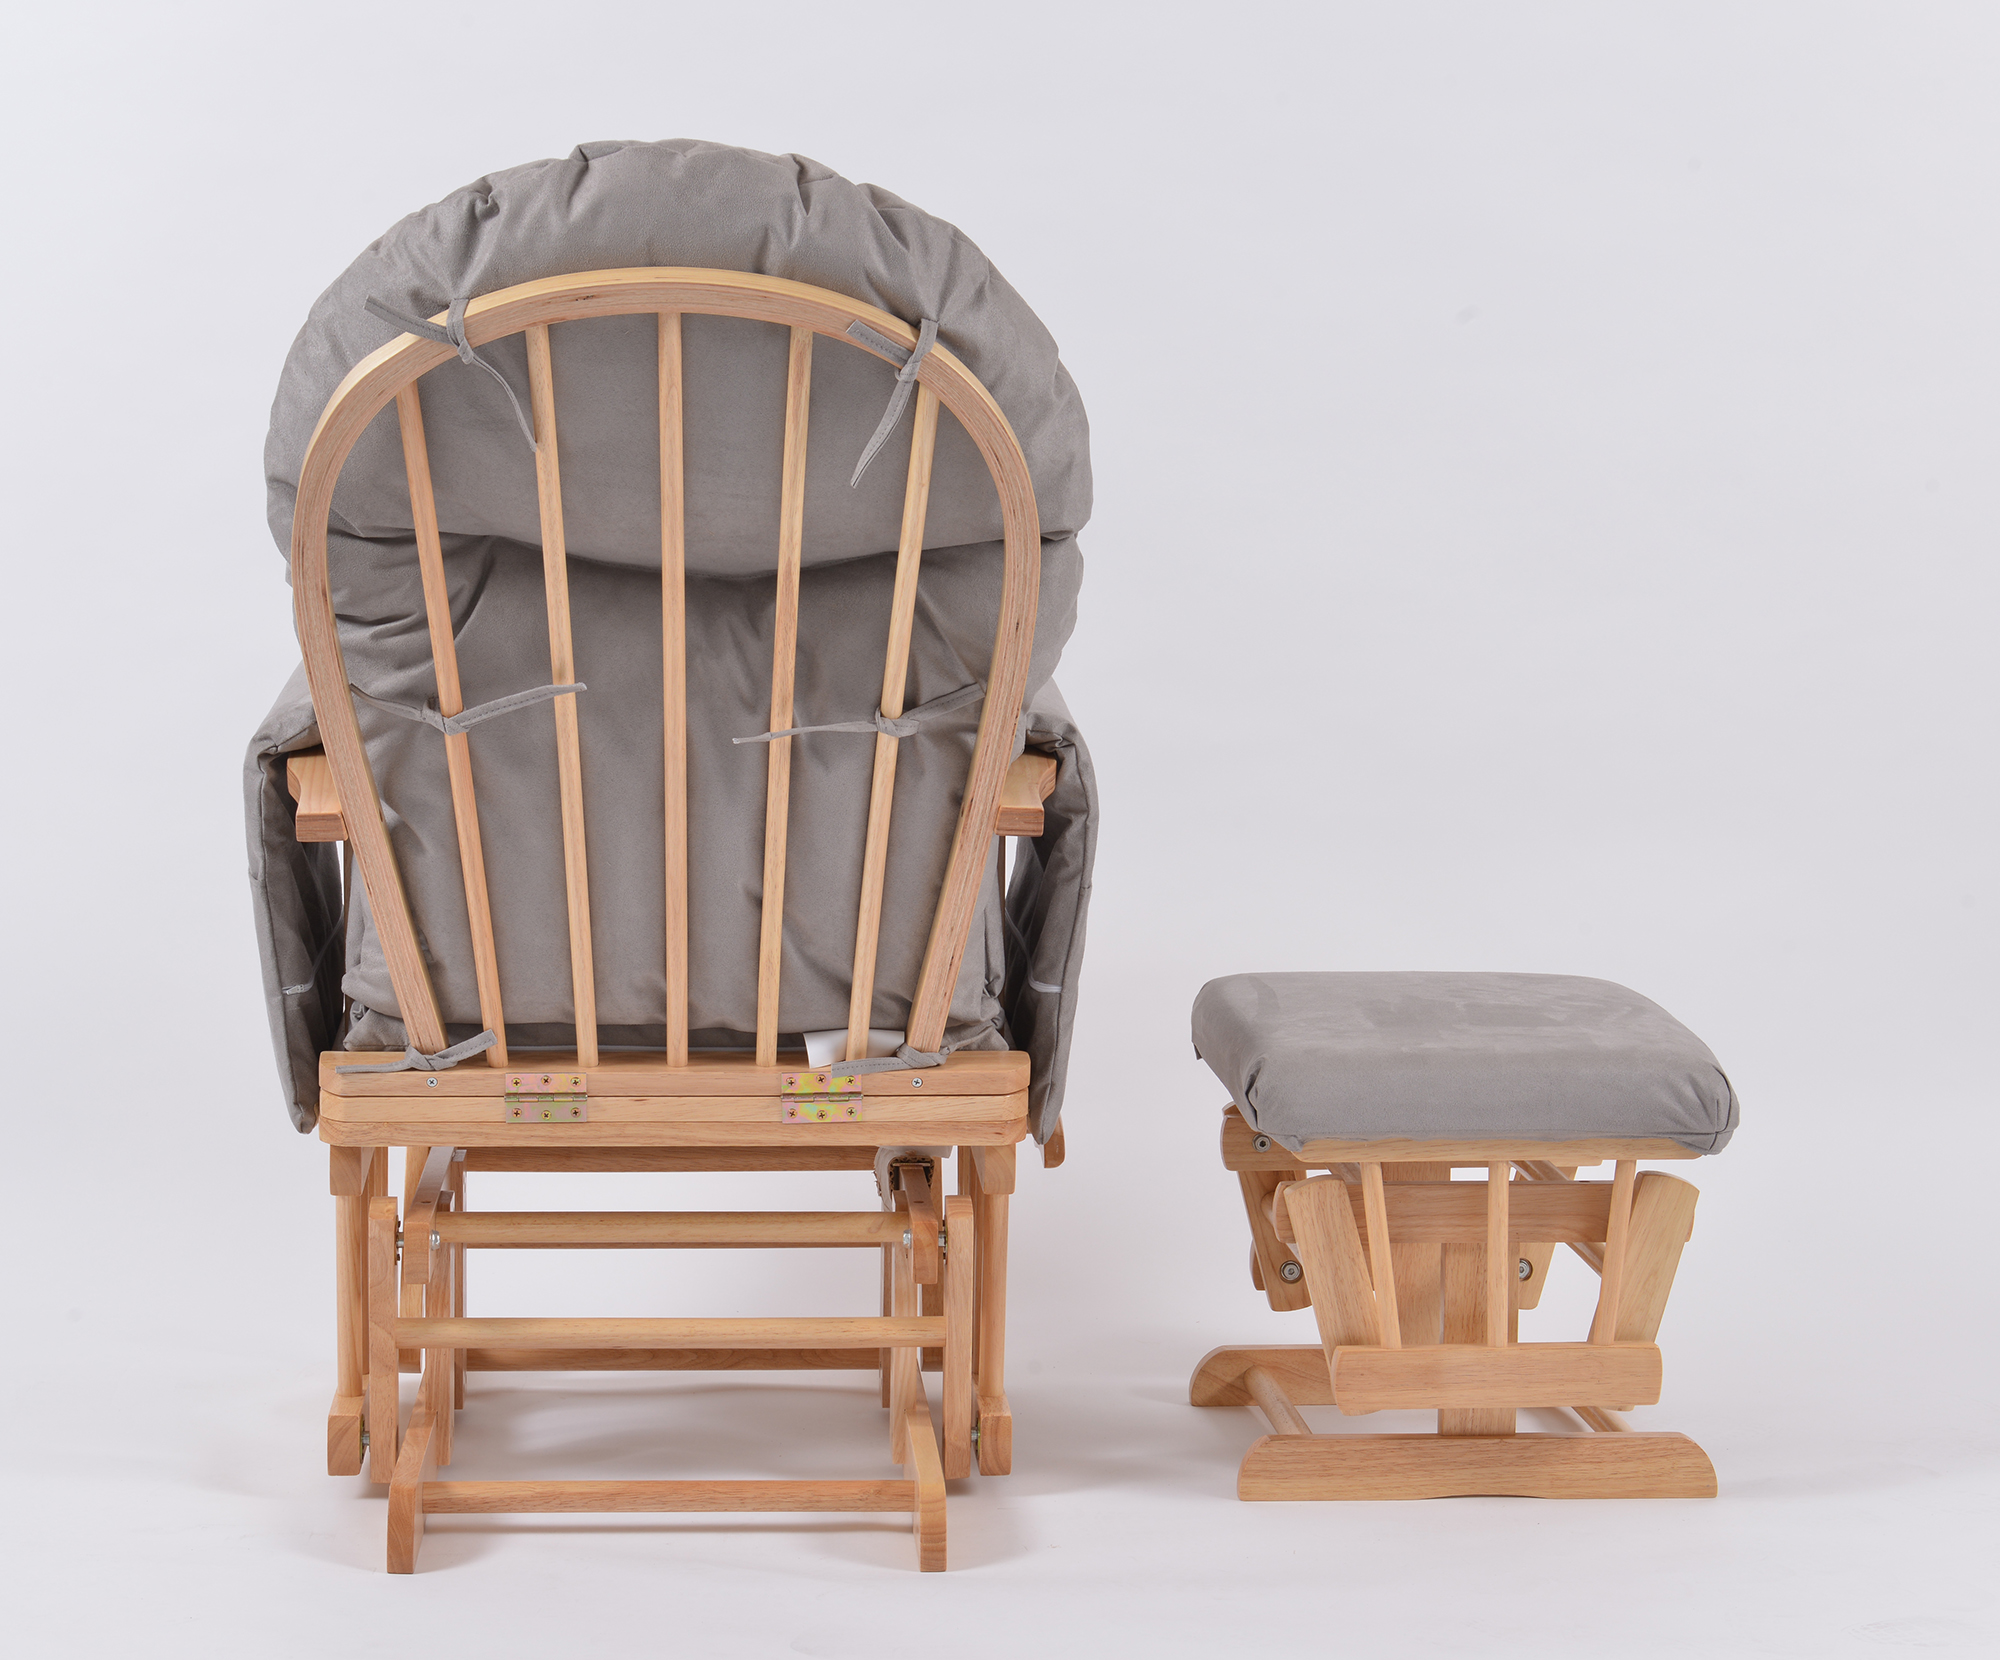 size 40 f777d 89583 Habebe Glider Chair & Stool - Beech Wood & Grey Washable Covers + Brake  System